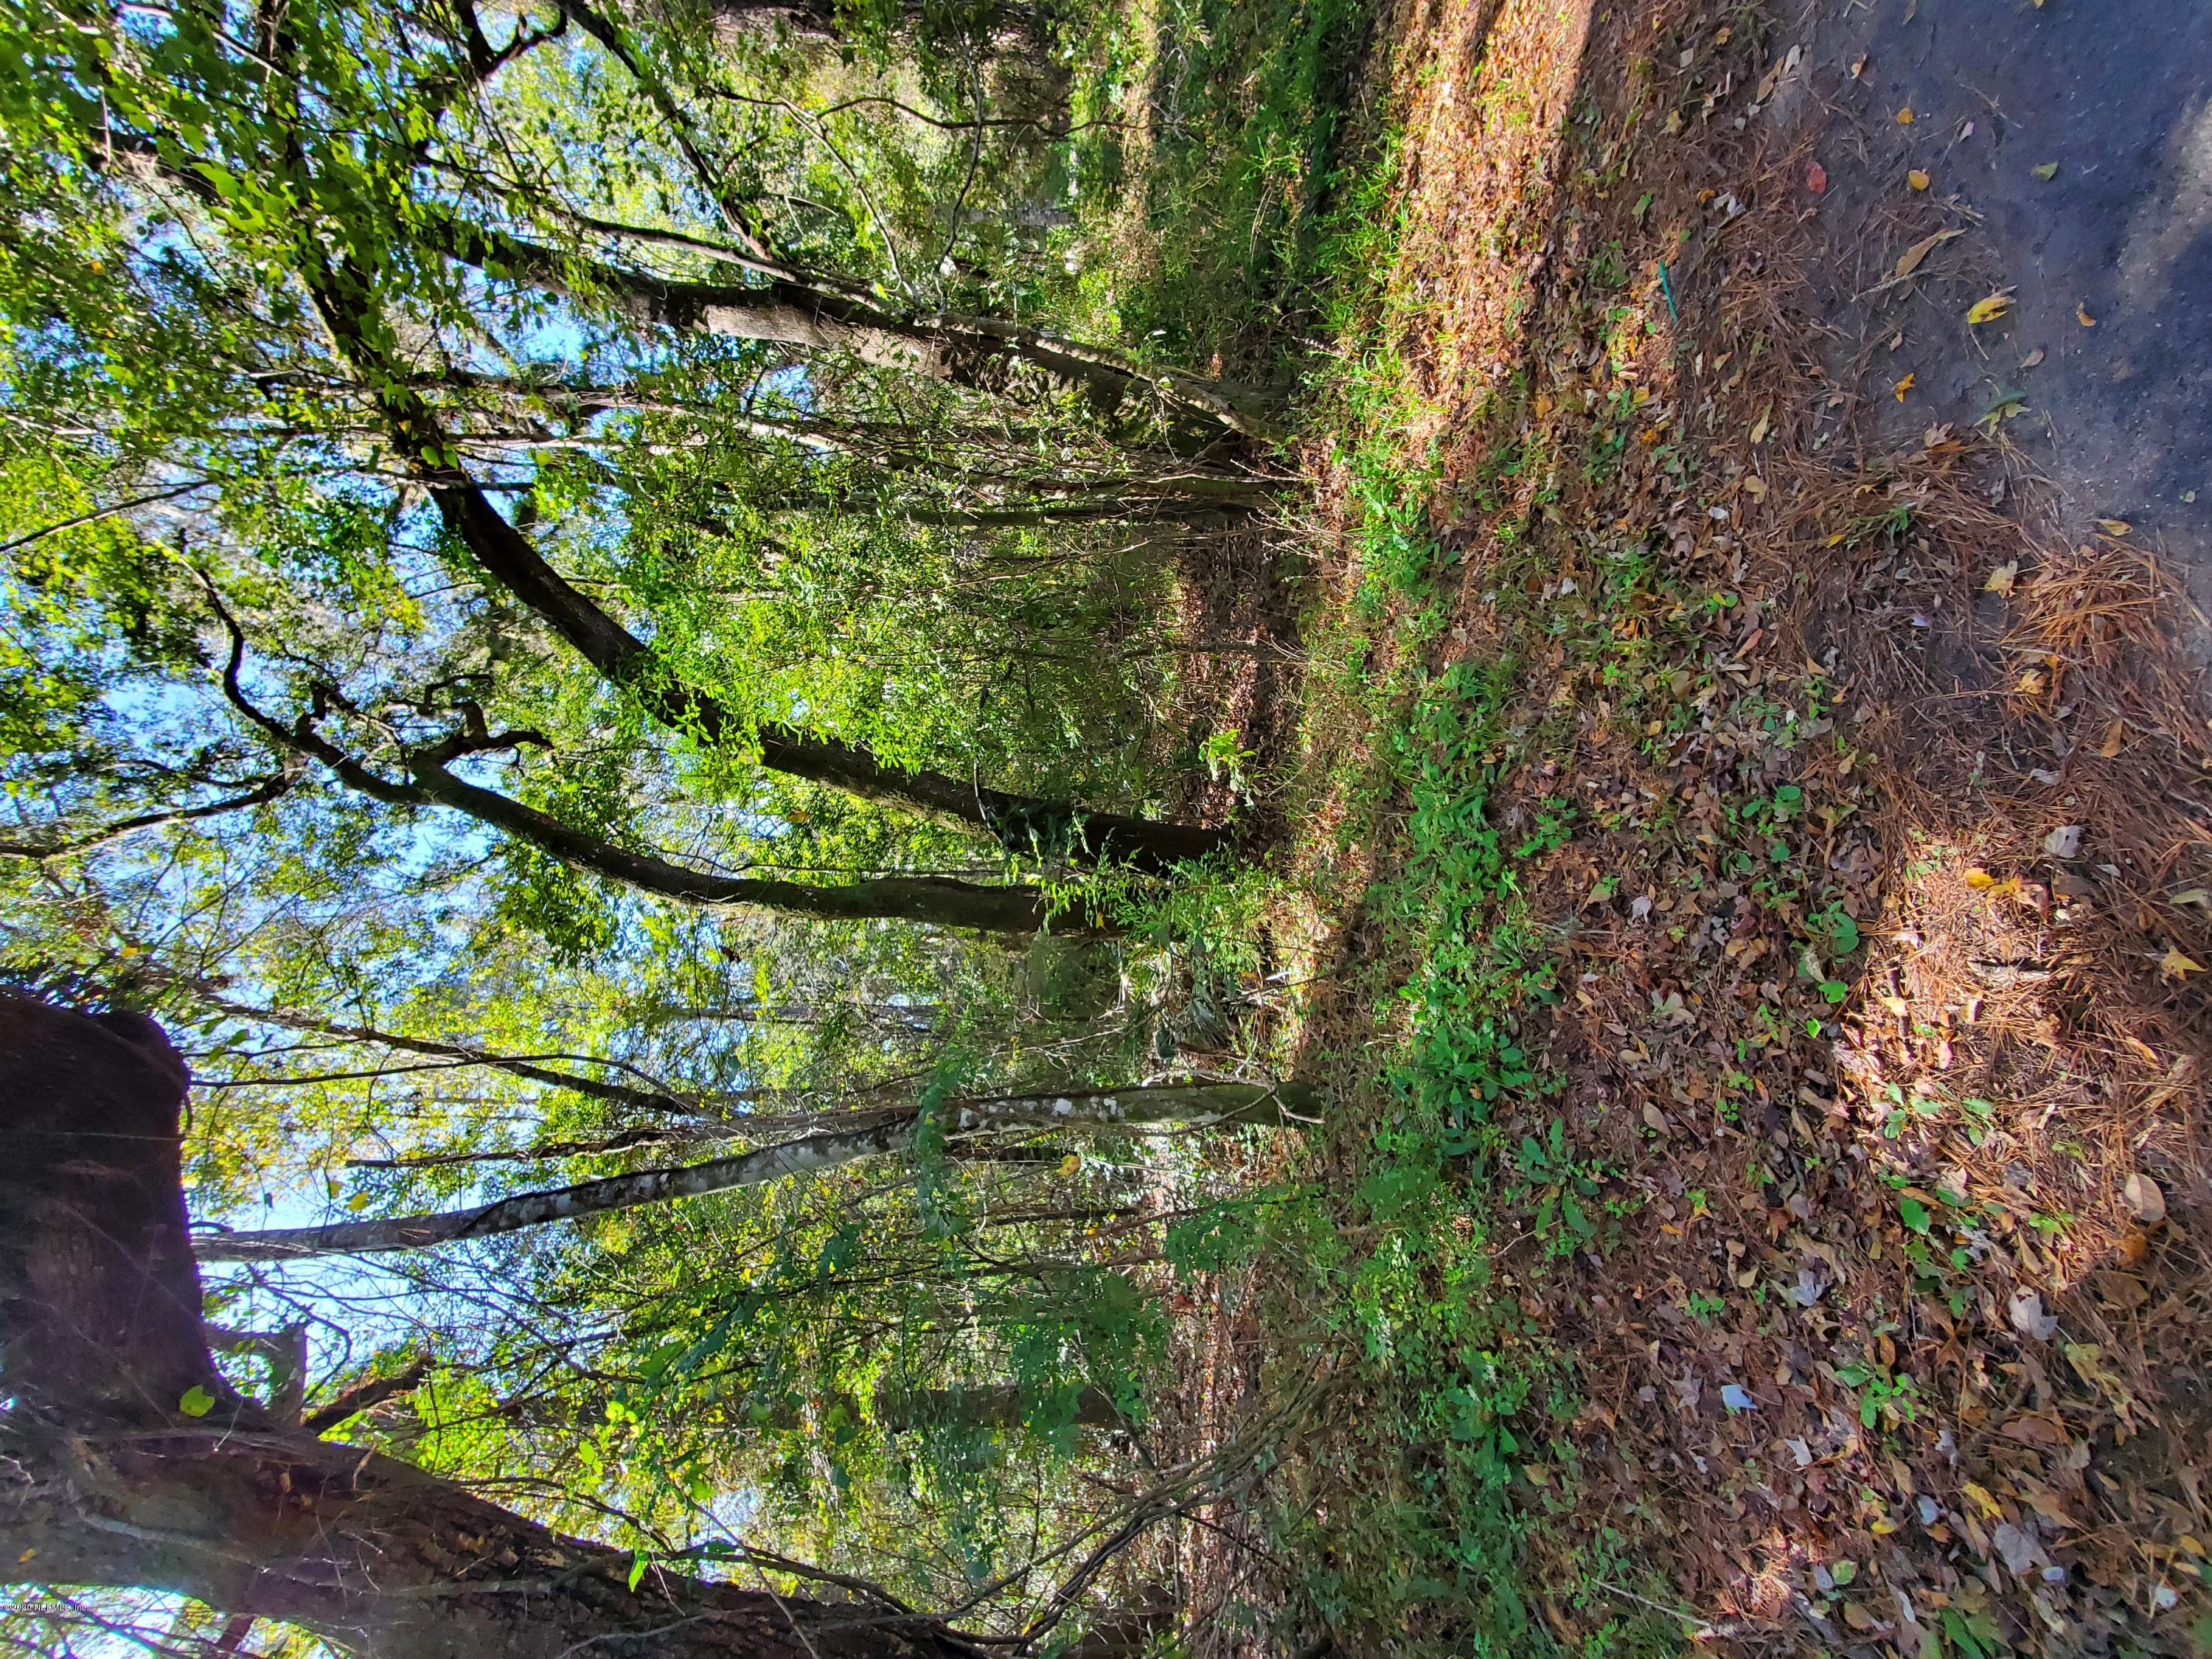 0 SCENIC, MIDDLEBURG, FLORIDA 32068, ,Vacant land,For sale,SCENIC,1083326